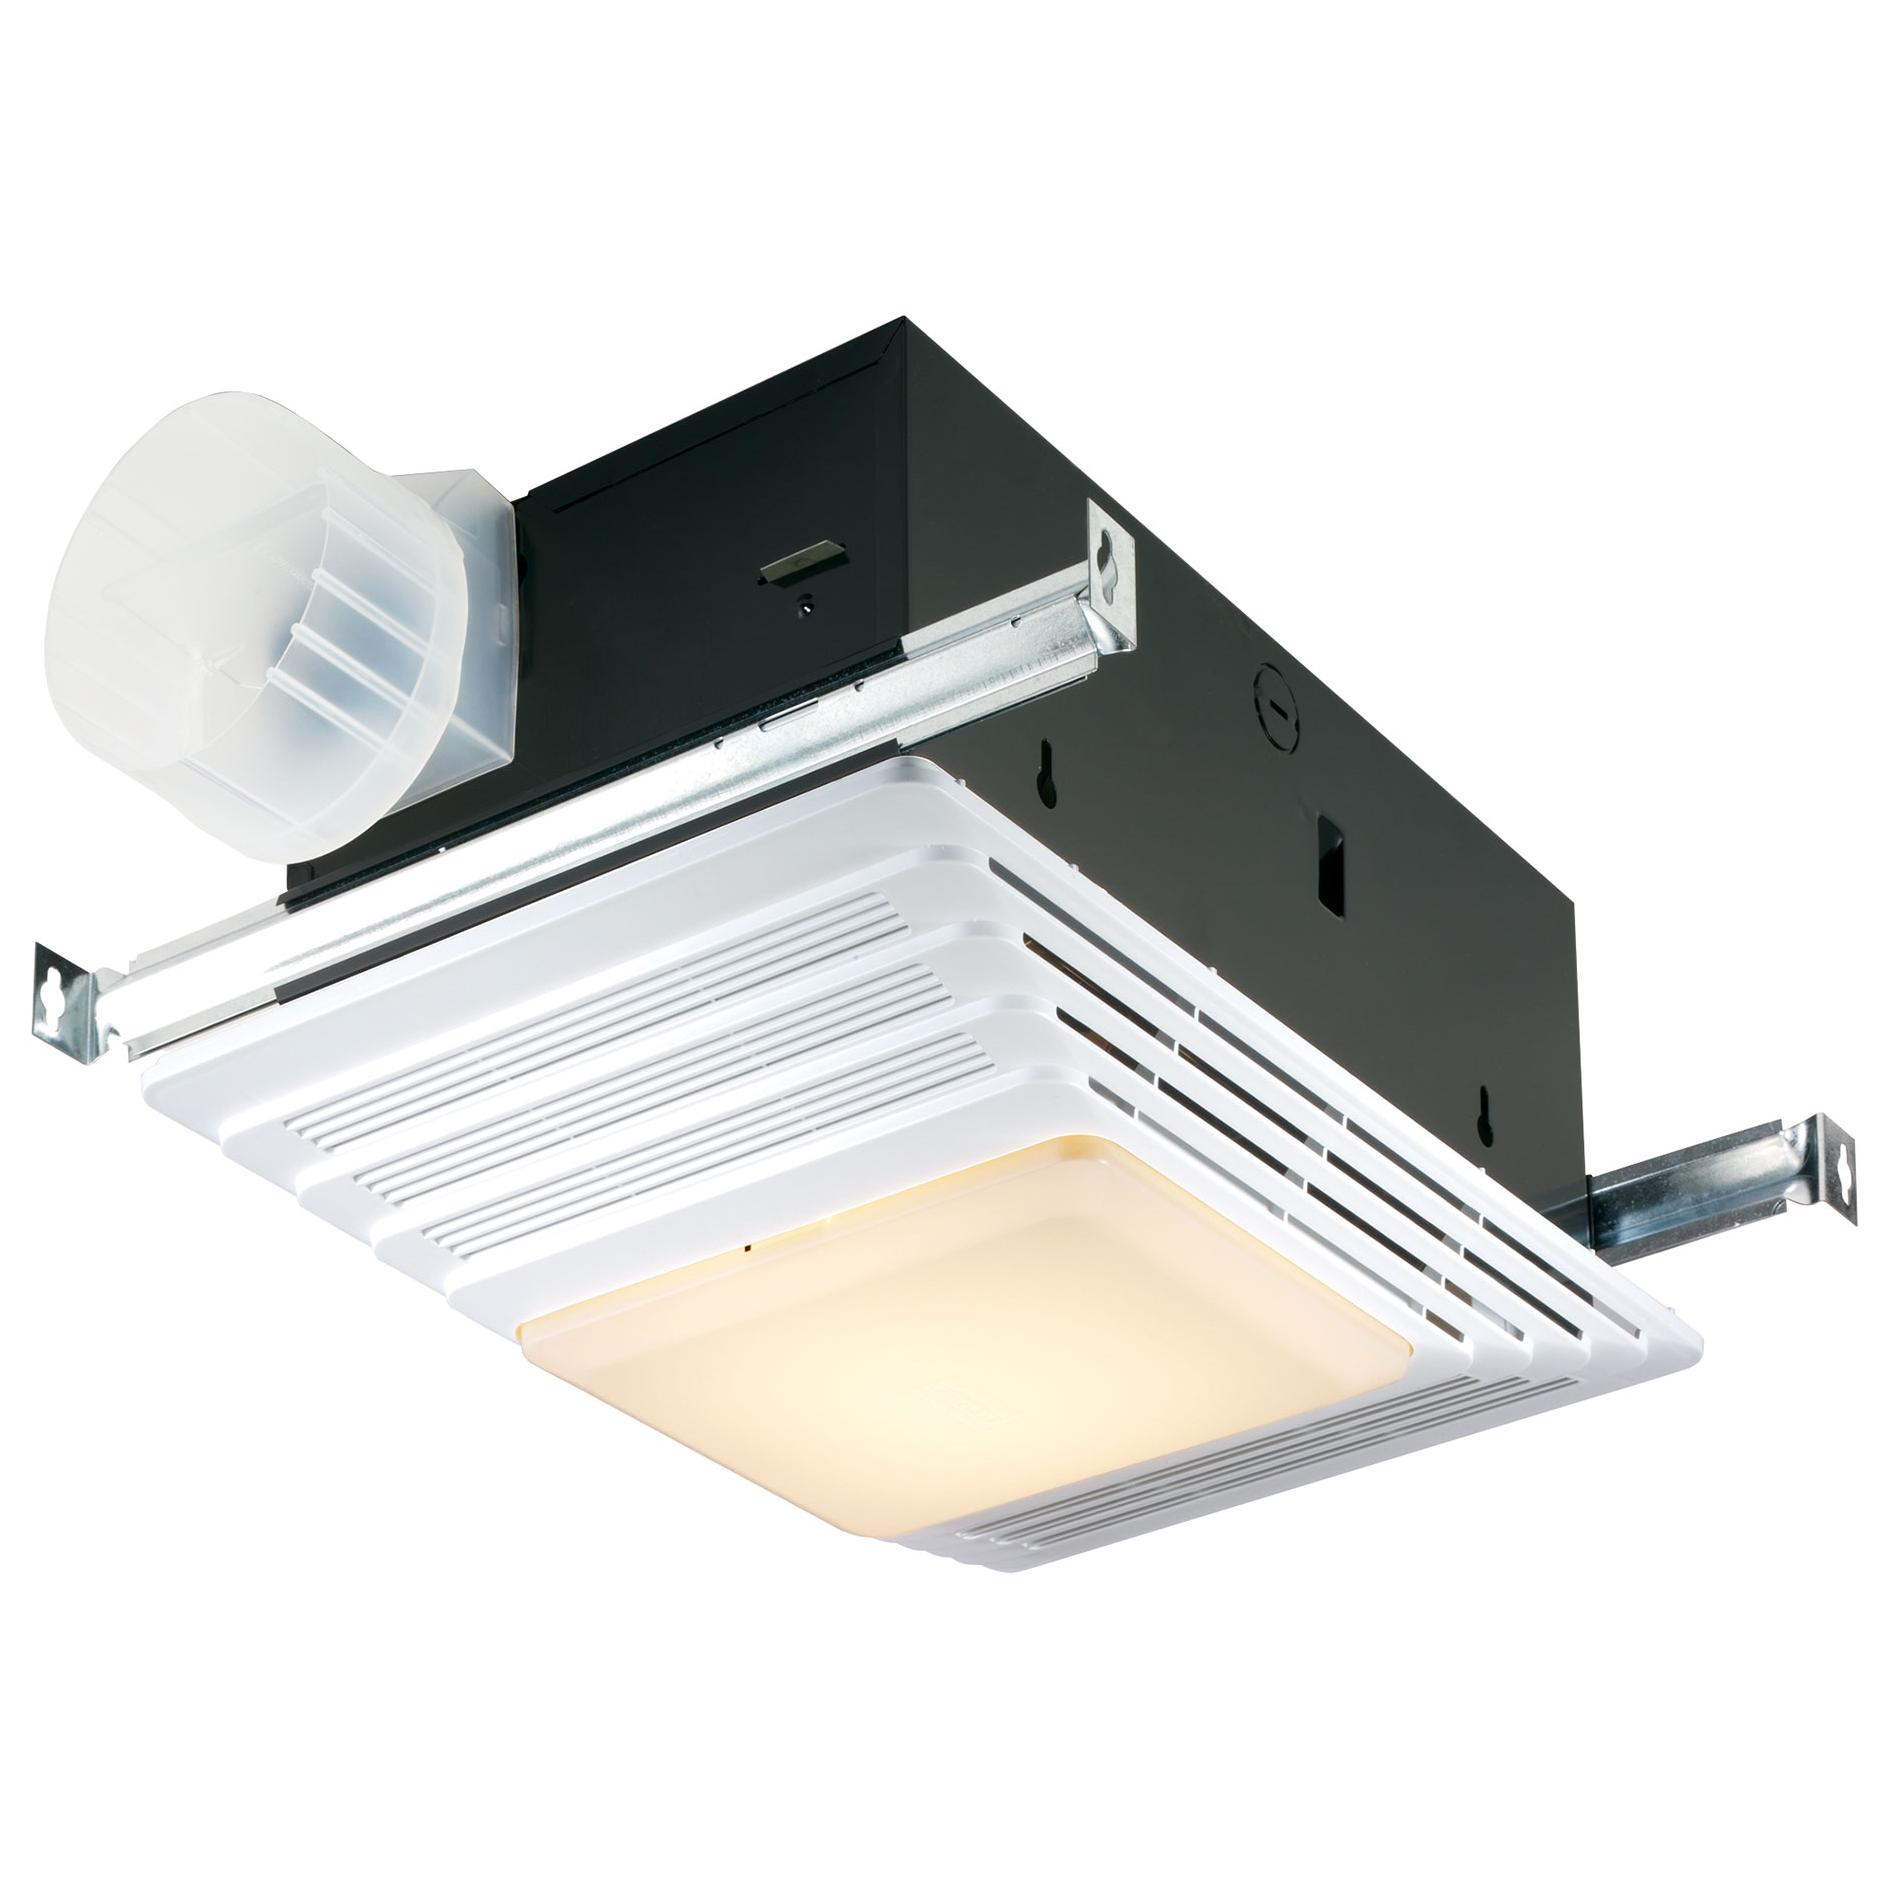 Broan 655 Heater And Heater Bath Fan With Light Combination Built In Household Ventilation